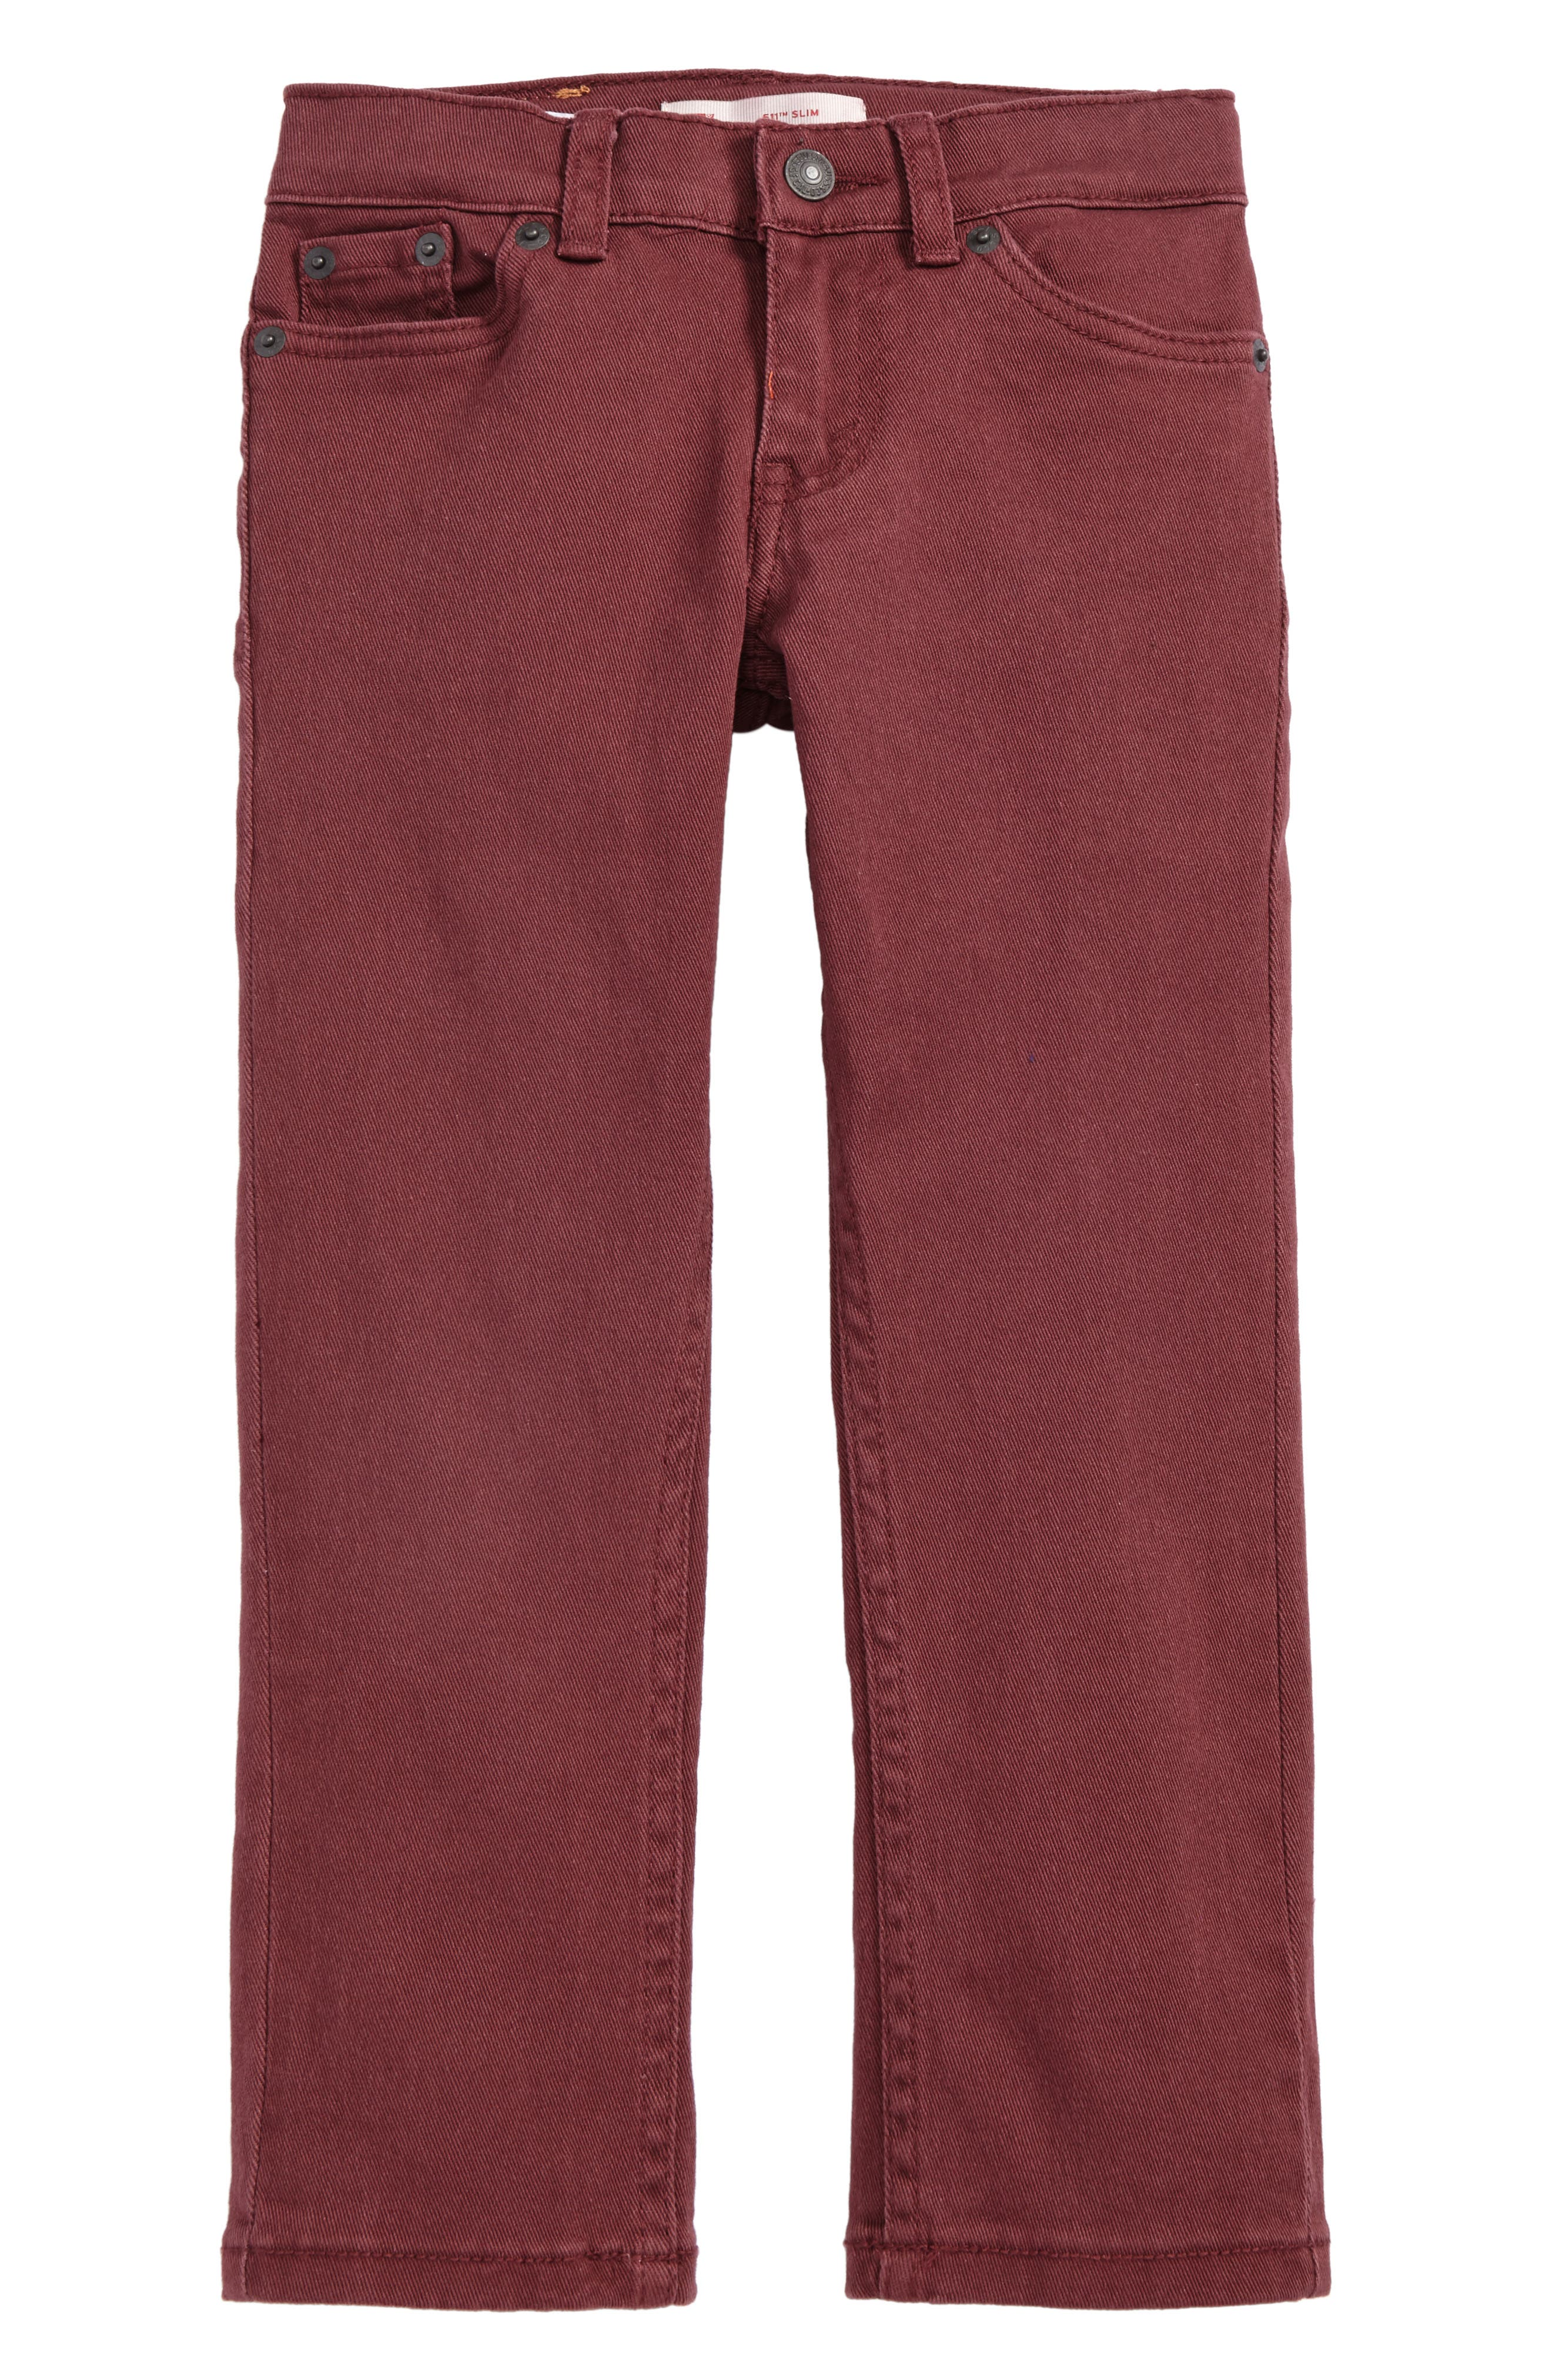 511<sup>™</sup> Slim Fit Jeans,                         Main,                         color, Red Mahogany